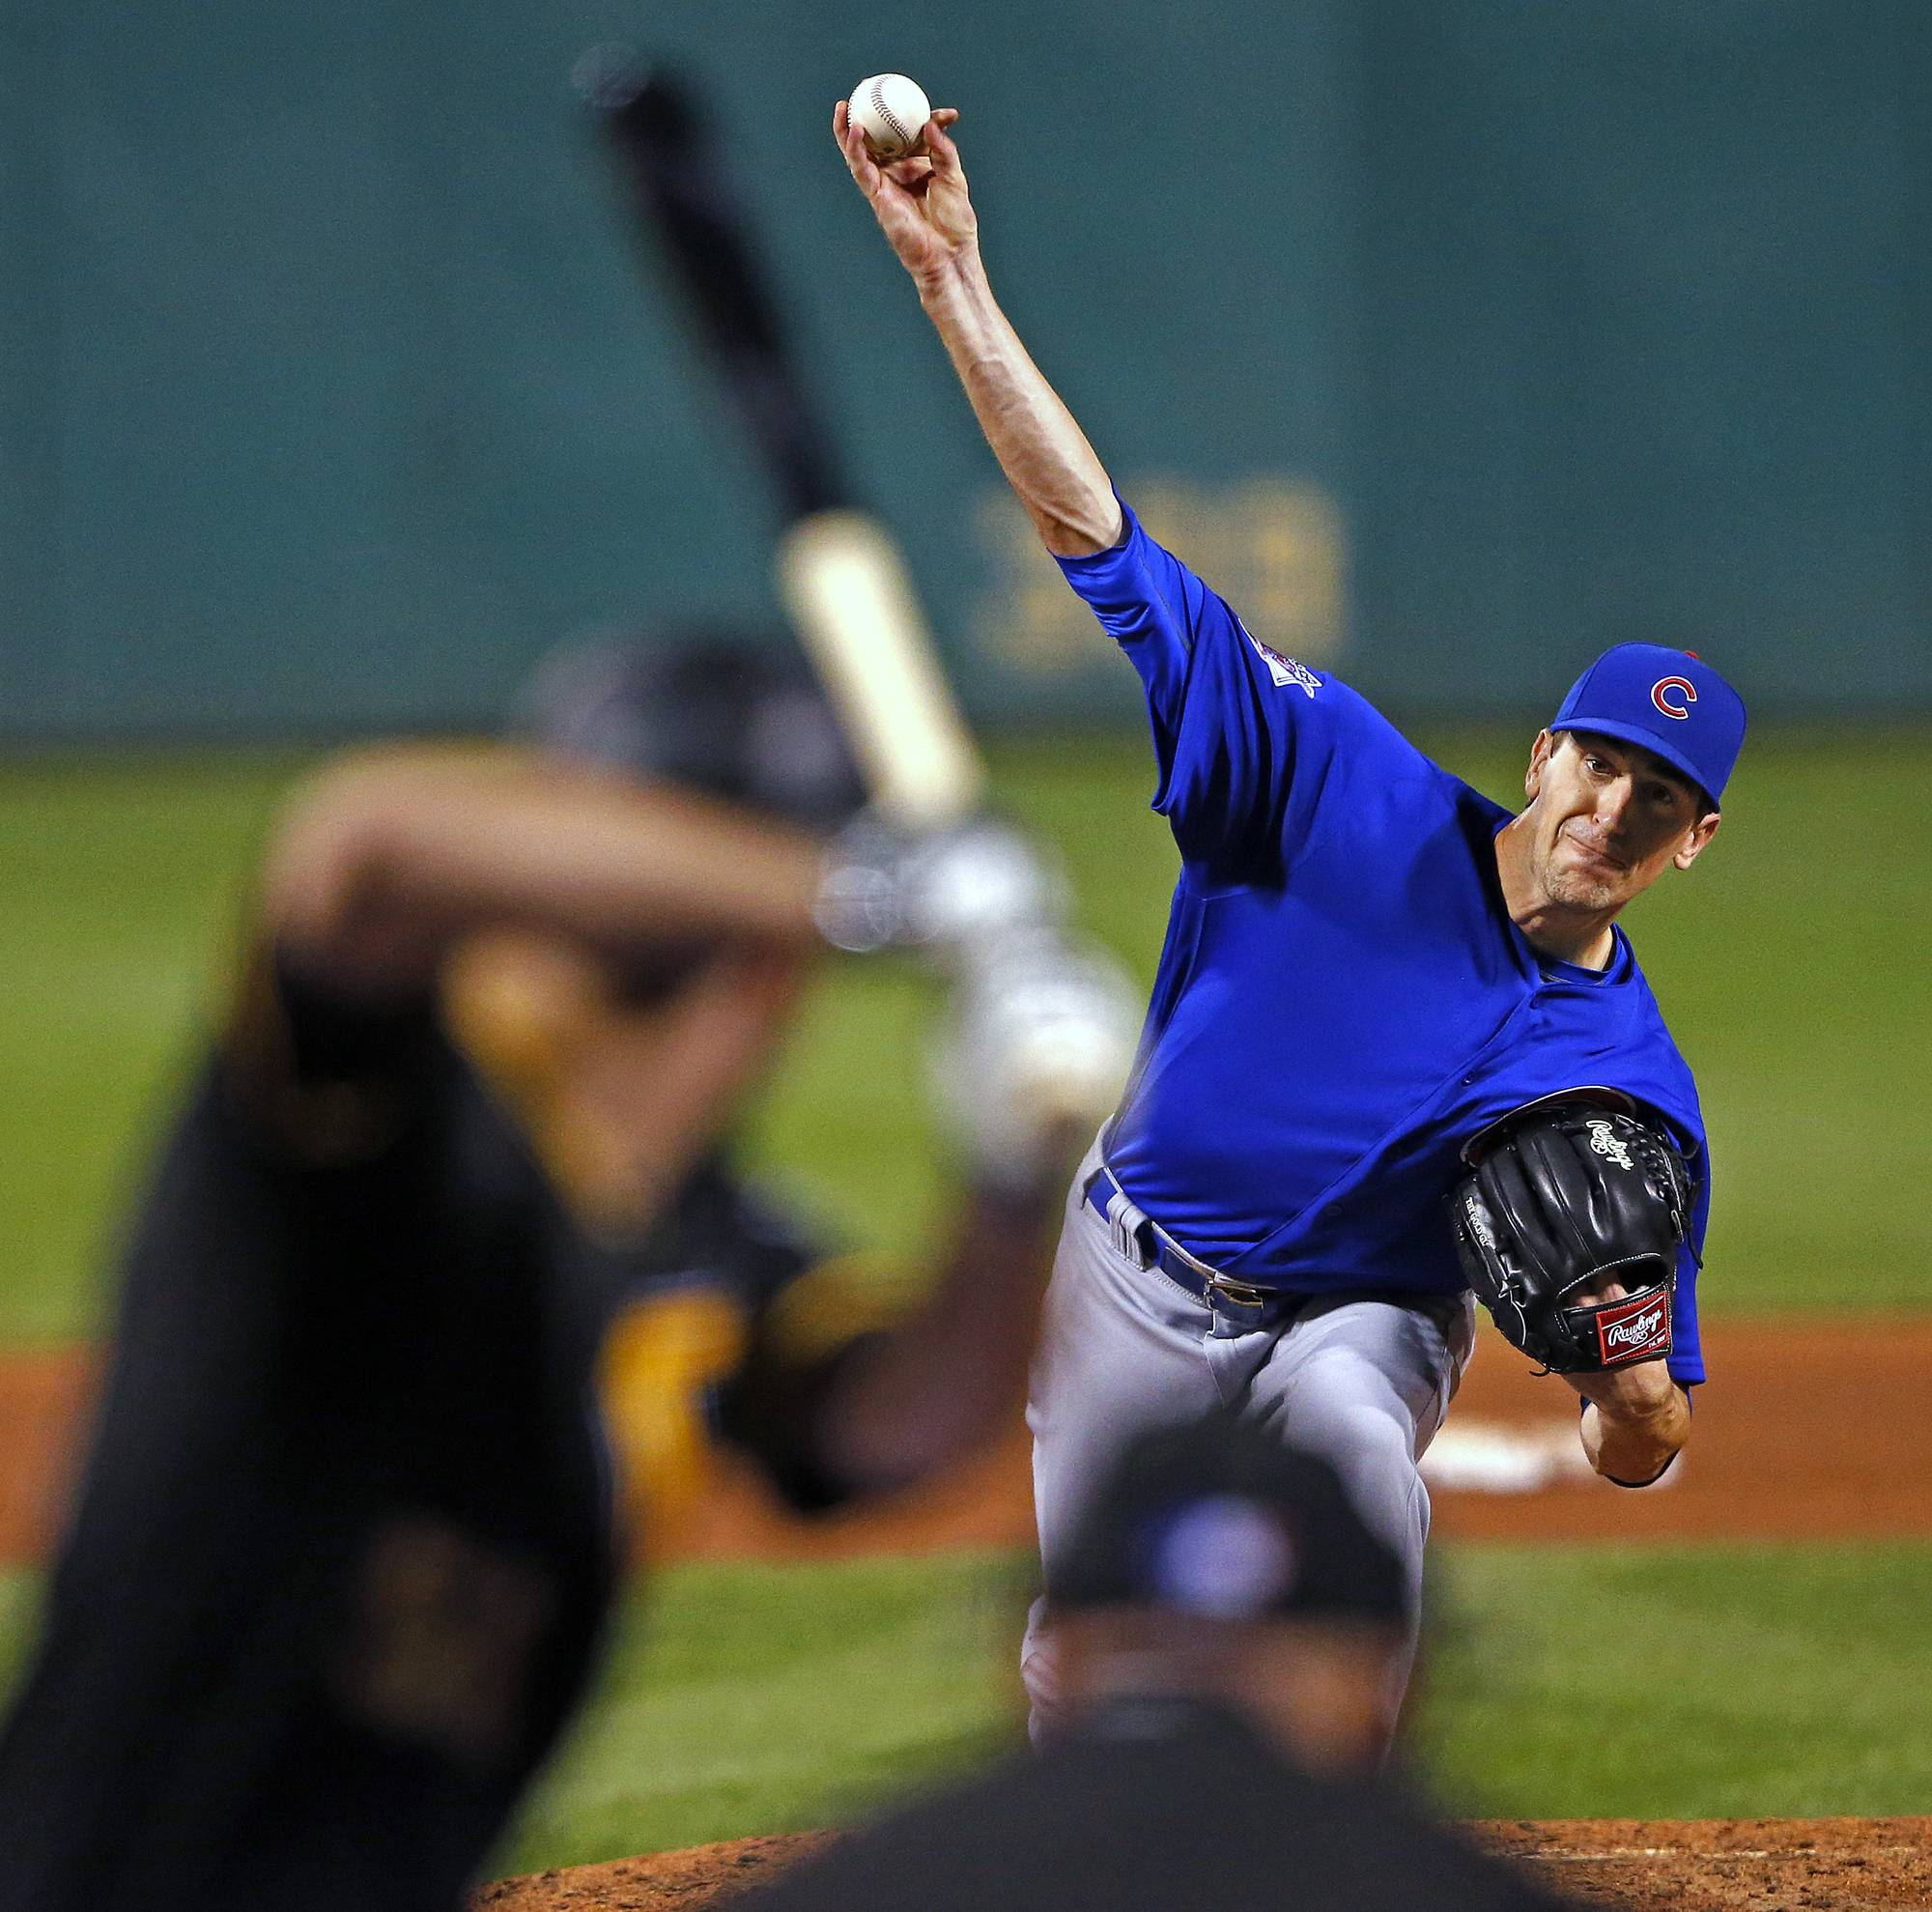 Chicago Cubs starting pitcher Kyle Hendricks delivers during the sixth inning of a baseball game against the Pittsburgh Pirates in Pittsburgh, Monday, Sept. 26, 2016. (AP Photo/Gene J. Puskar)